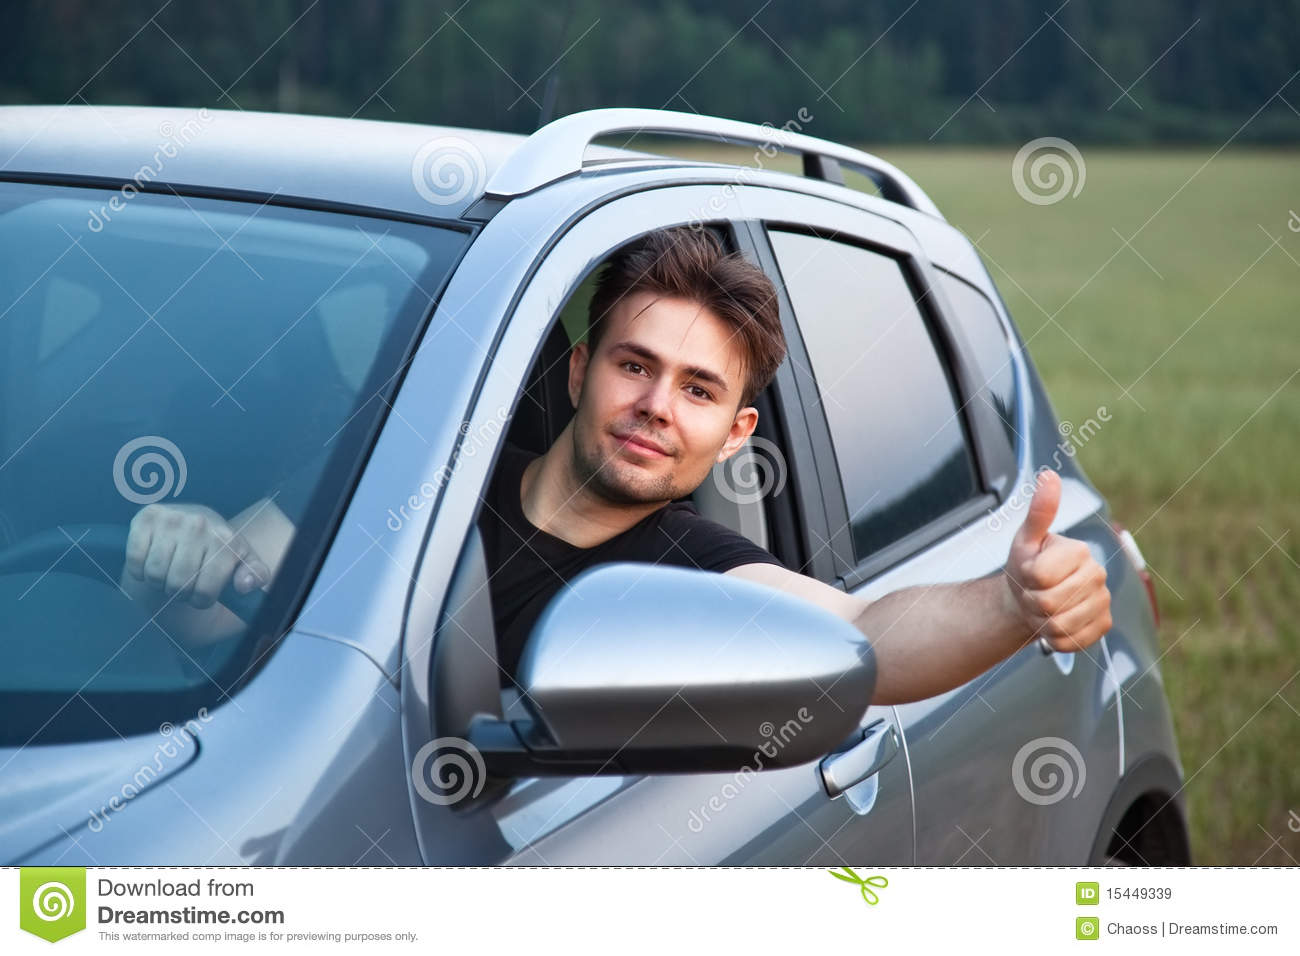 Merveilleux Young Man Looking Out Of Car